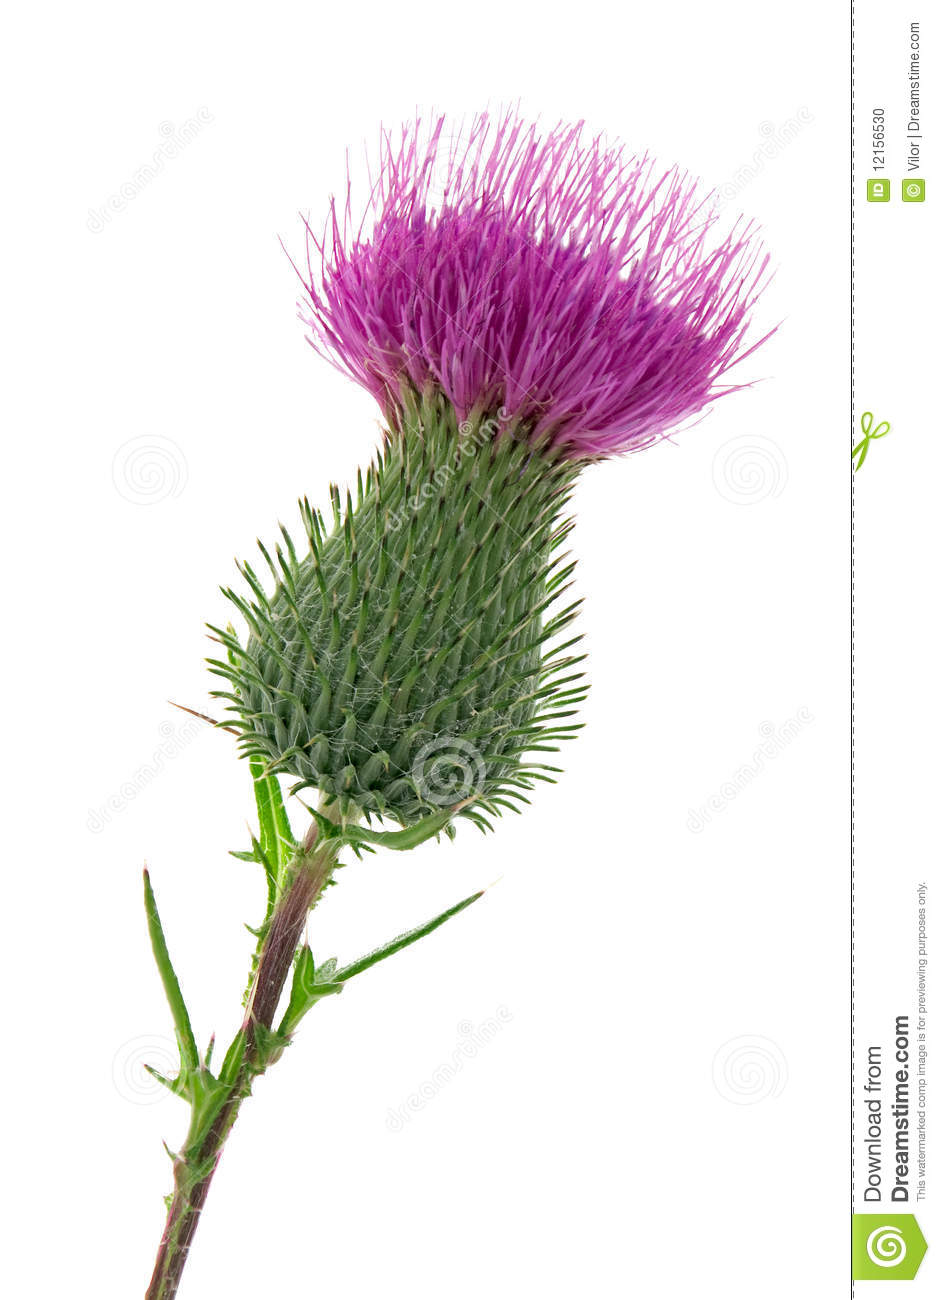 Thistle Stock Photo - Image: 12156530 Golf Ball On Tee Clipart